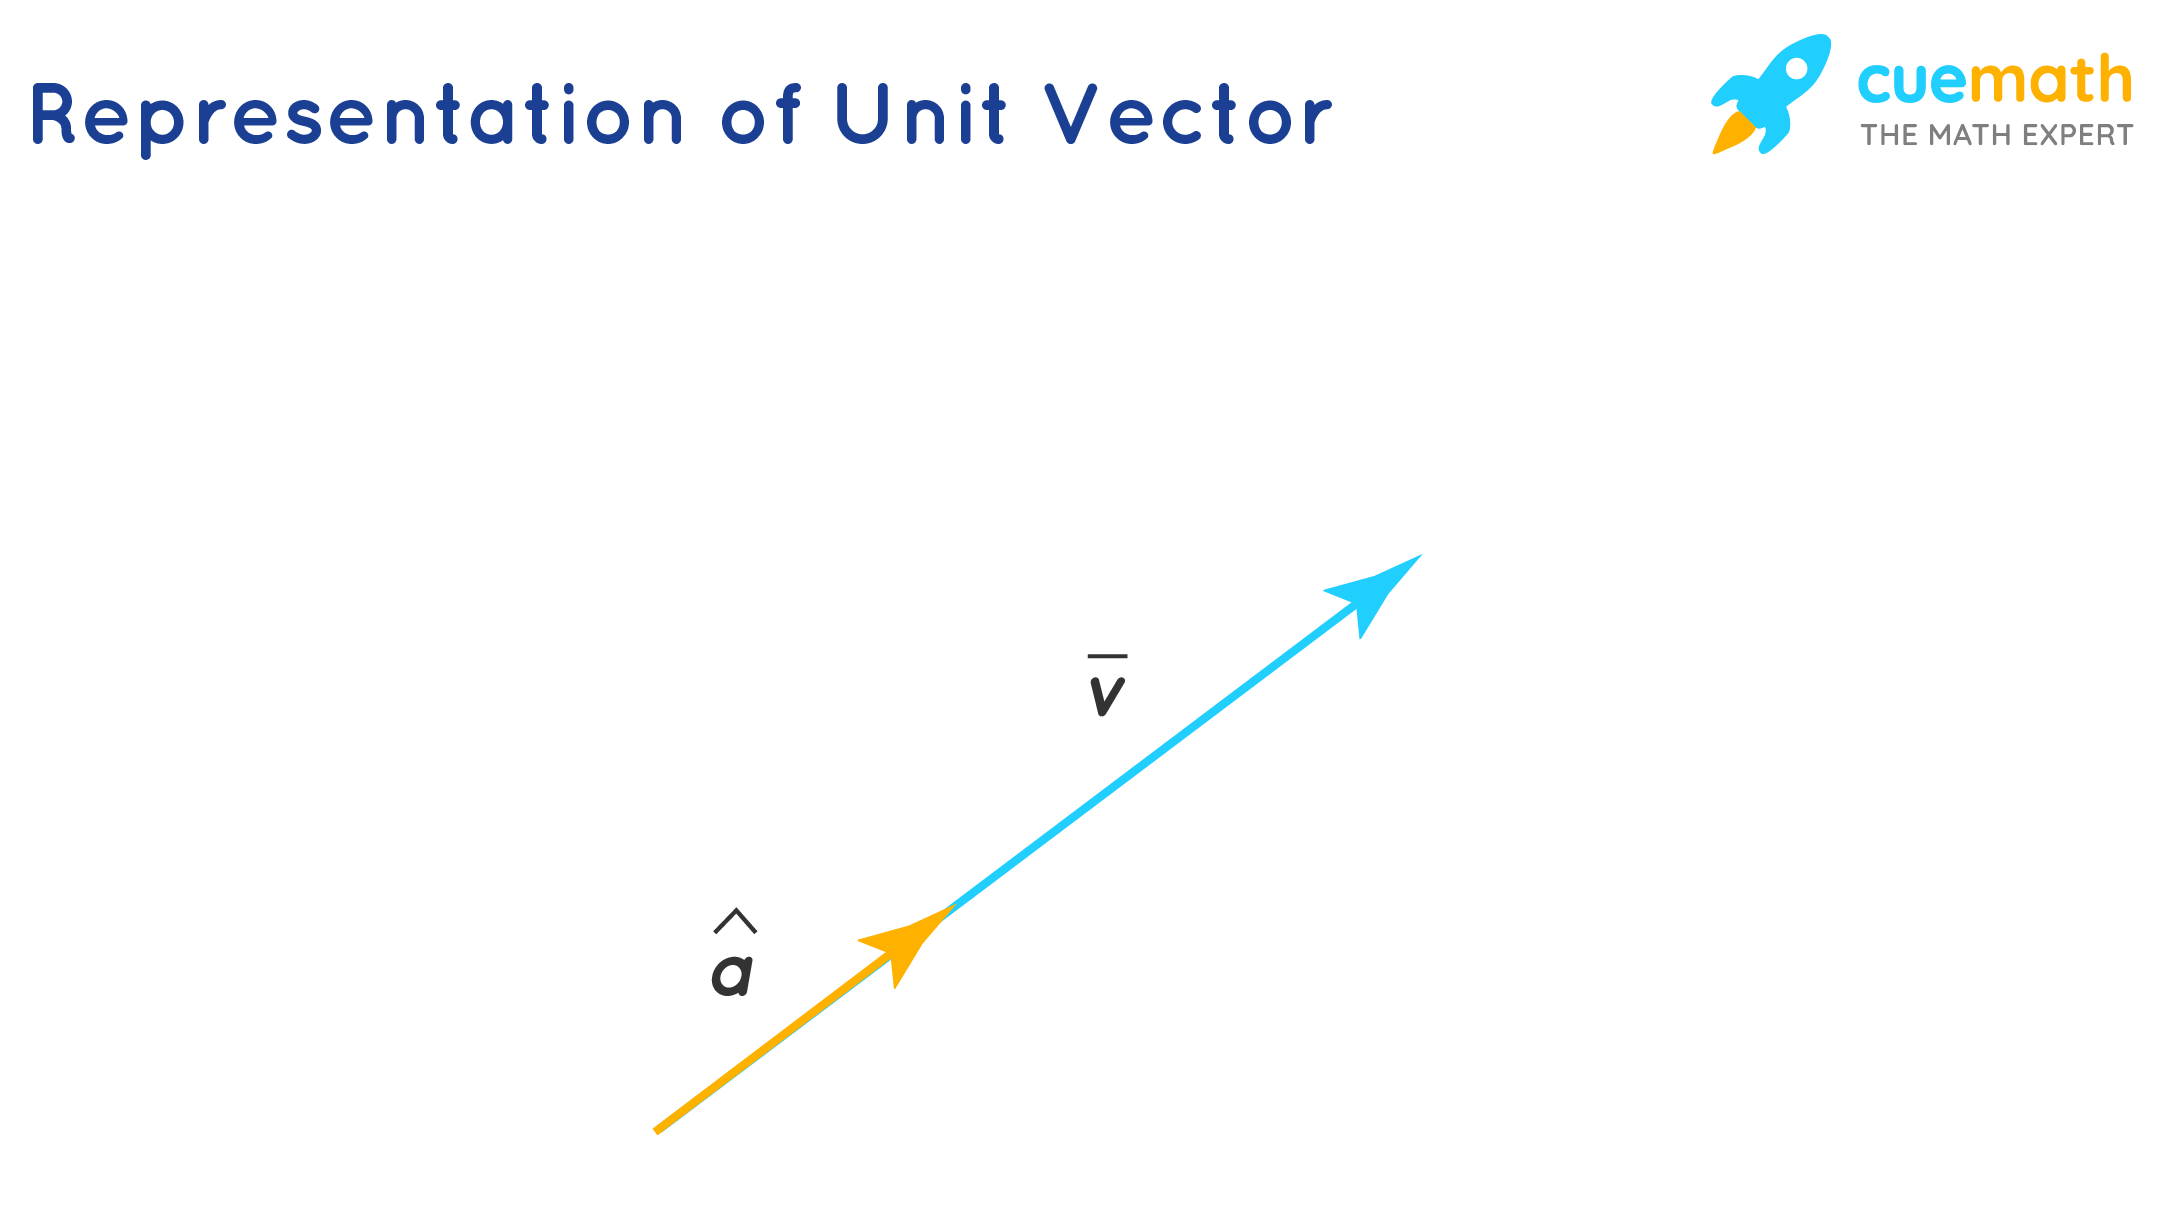 Representation of Unit Vector